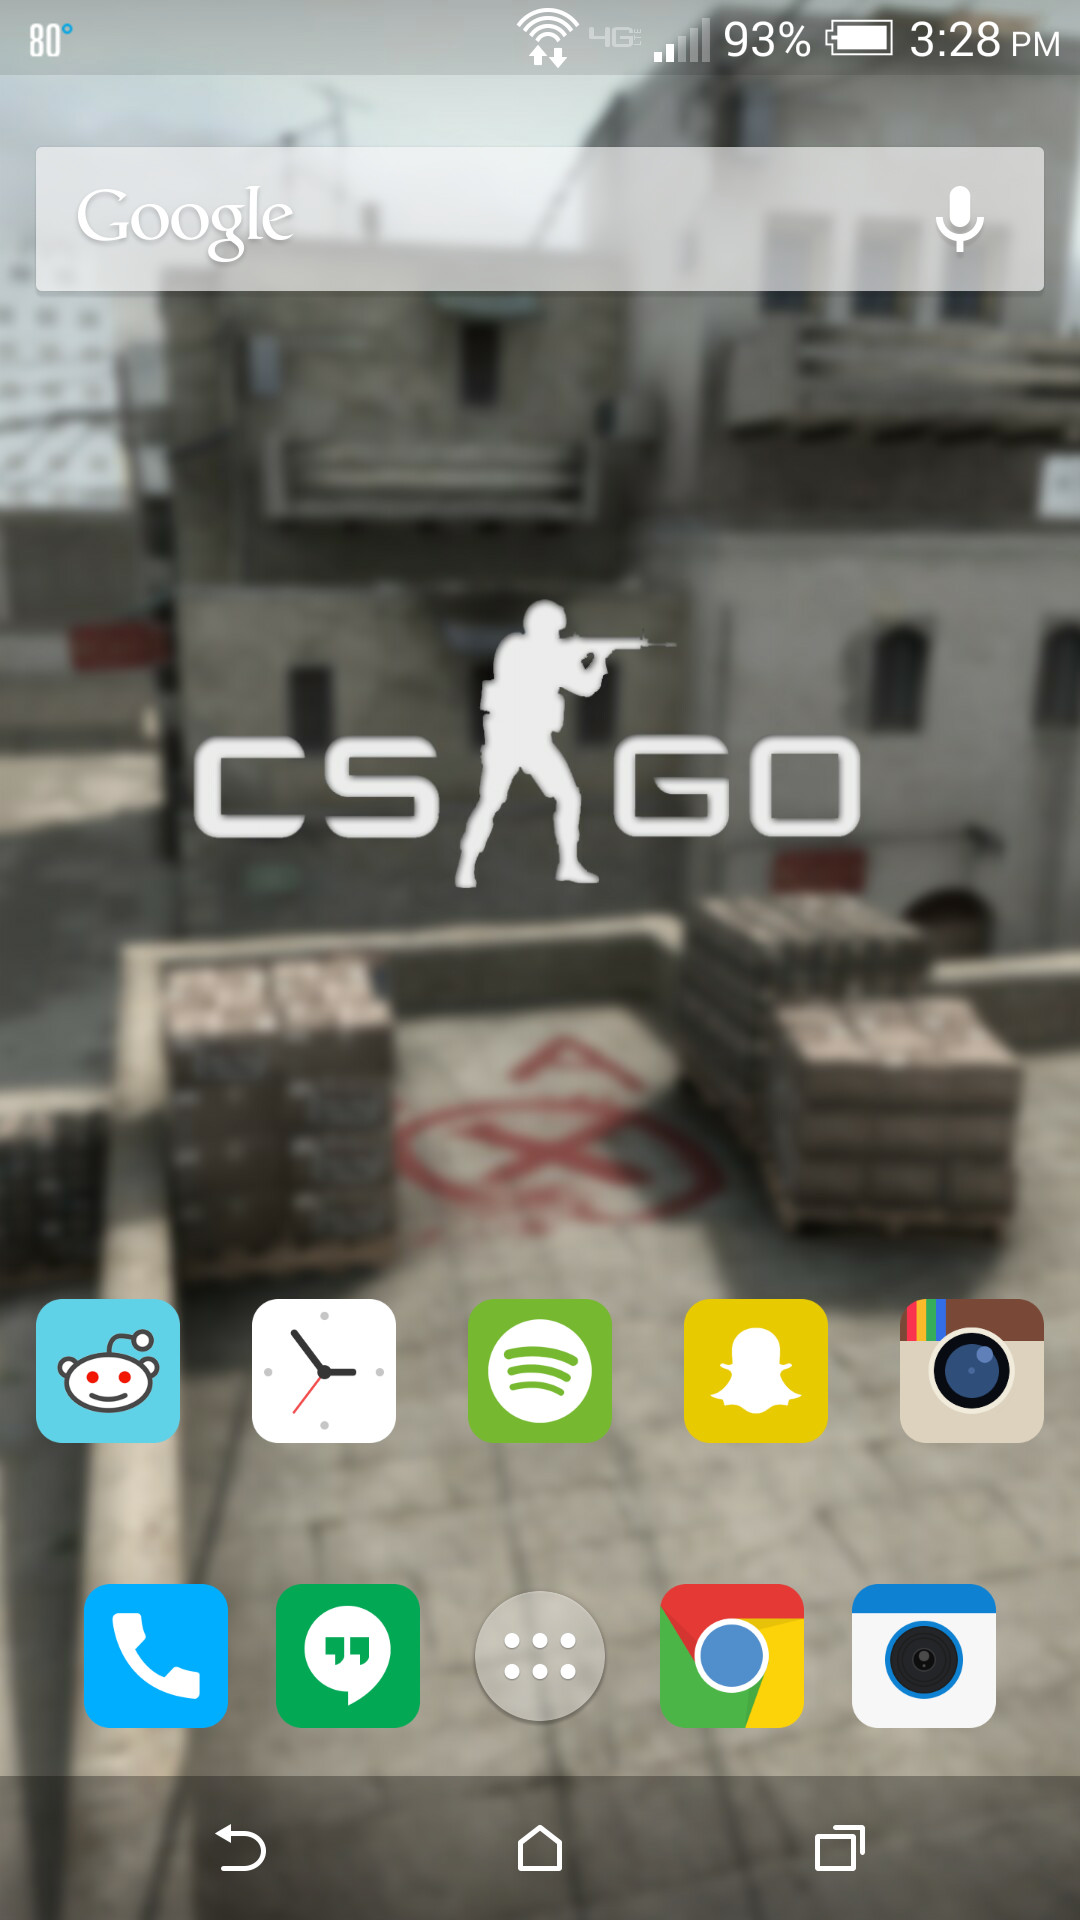 1080x1920 Couldn't find a god CSGO phone wallpaper so I made one. DL link in comments  if you want it.